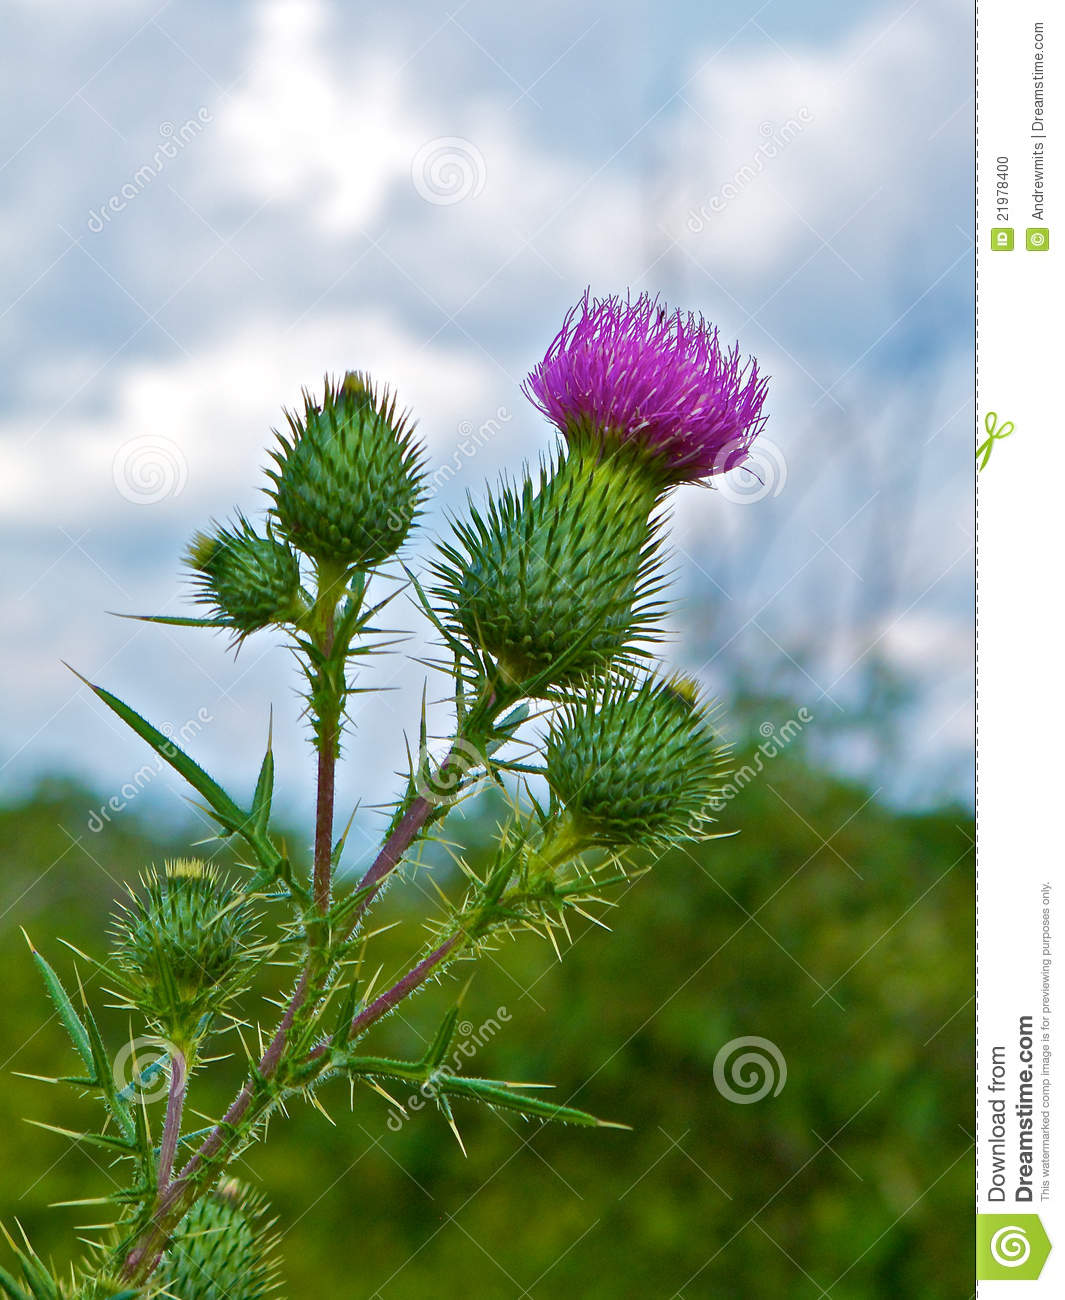 Prickly Profile Of Bull Thistle Plant Stock Photo.